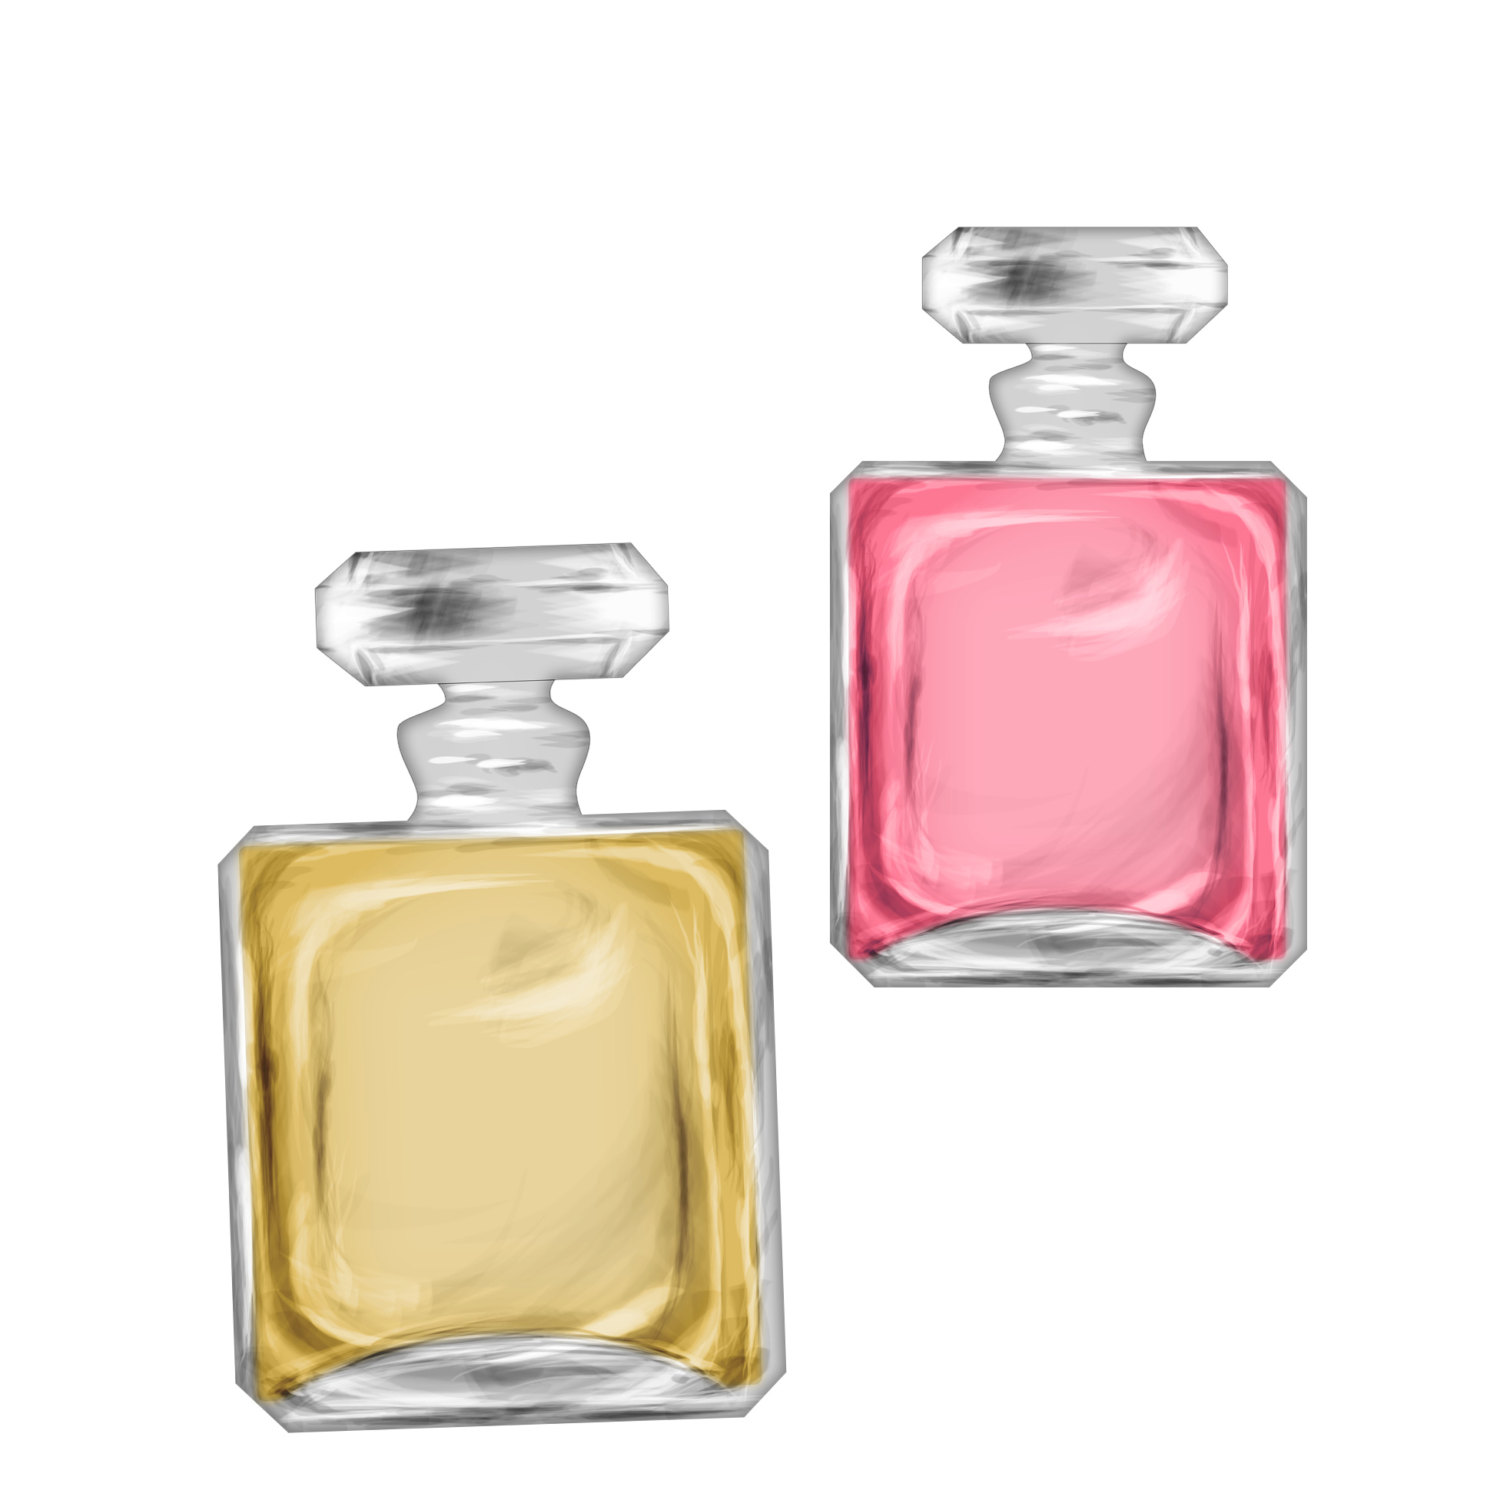 Perfume clipart - Clipground